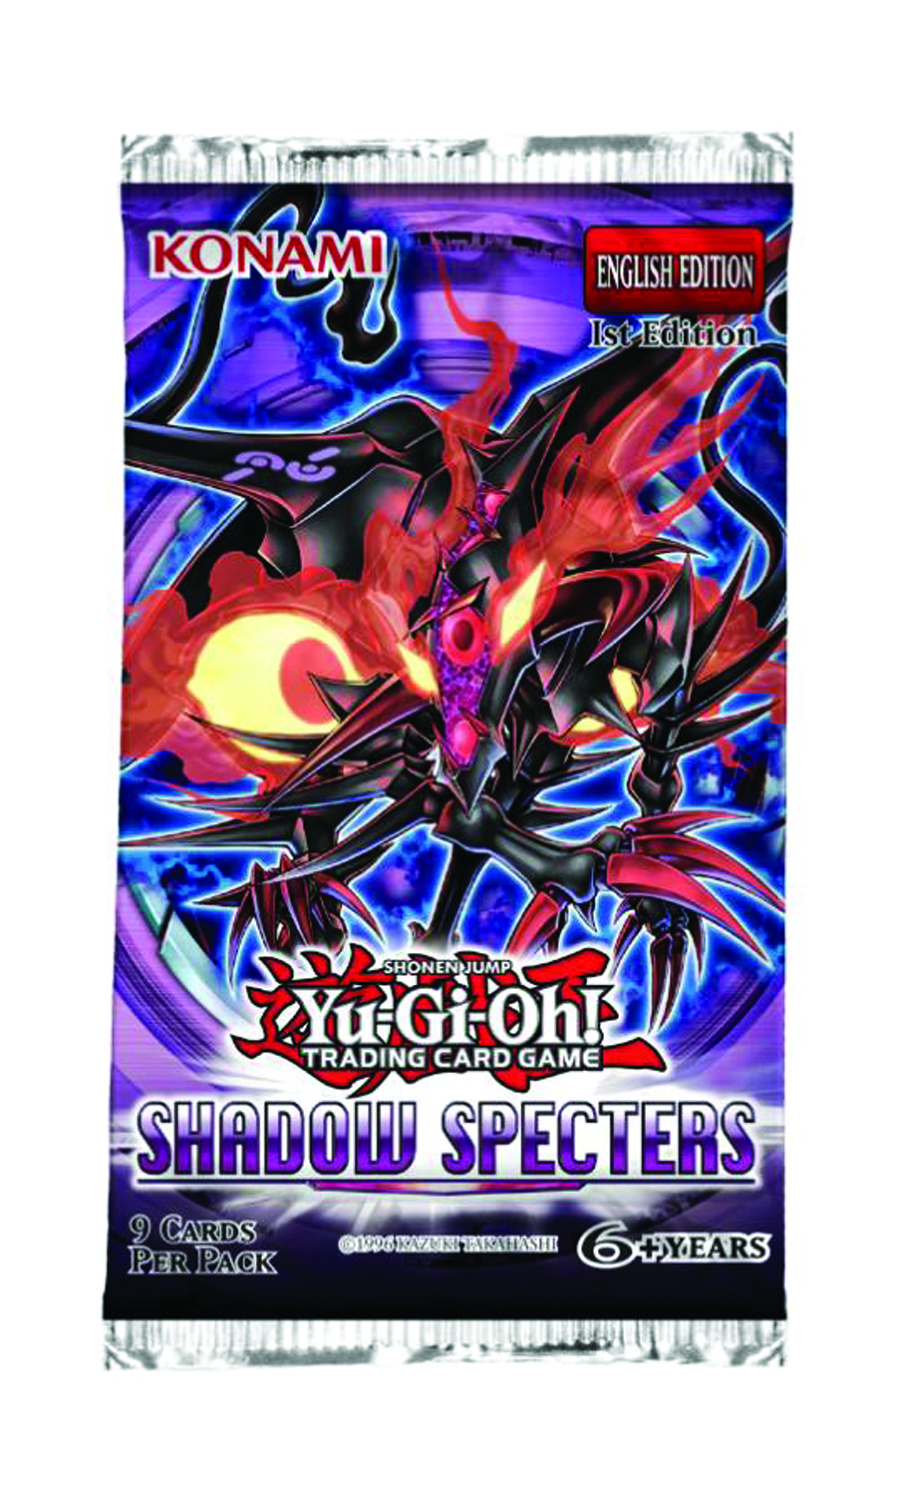 YU GI OH TCG SHADOW SPECTERS BOOSTER DIS